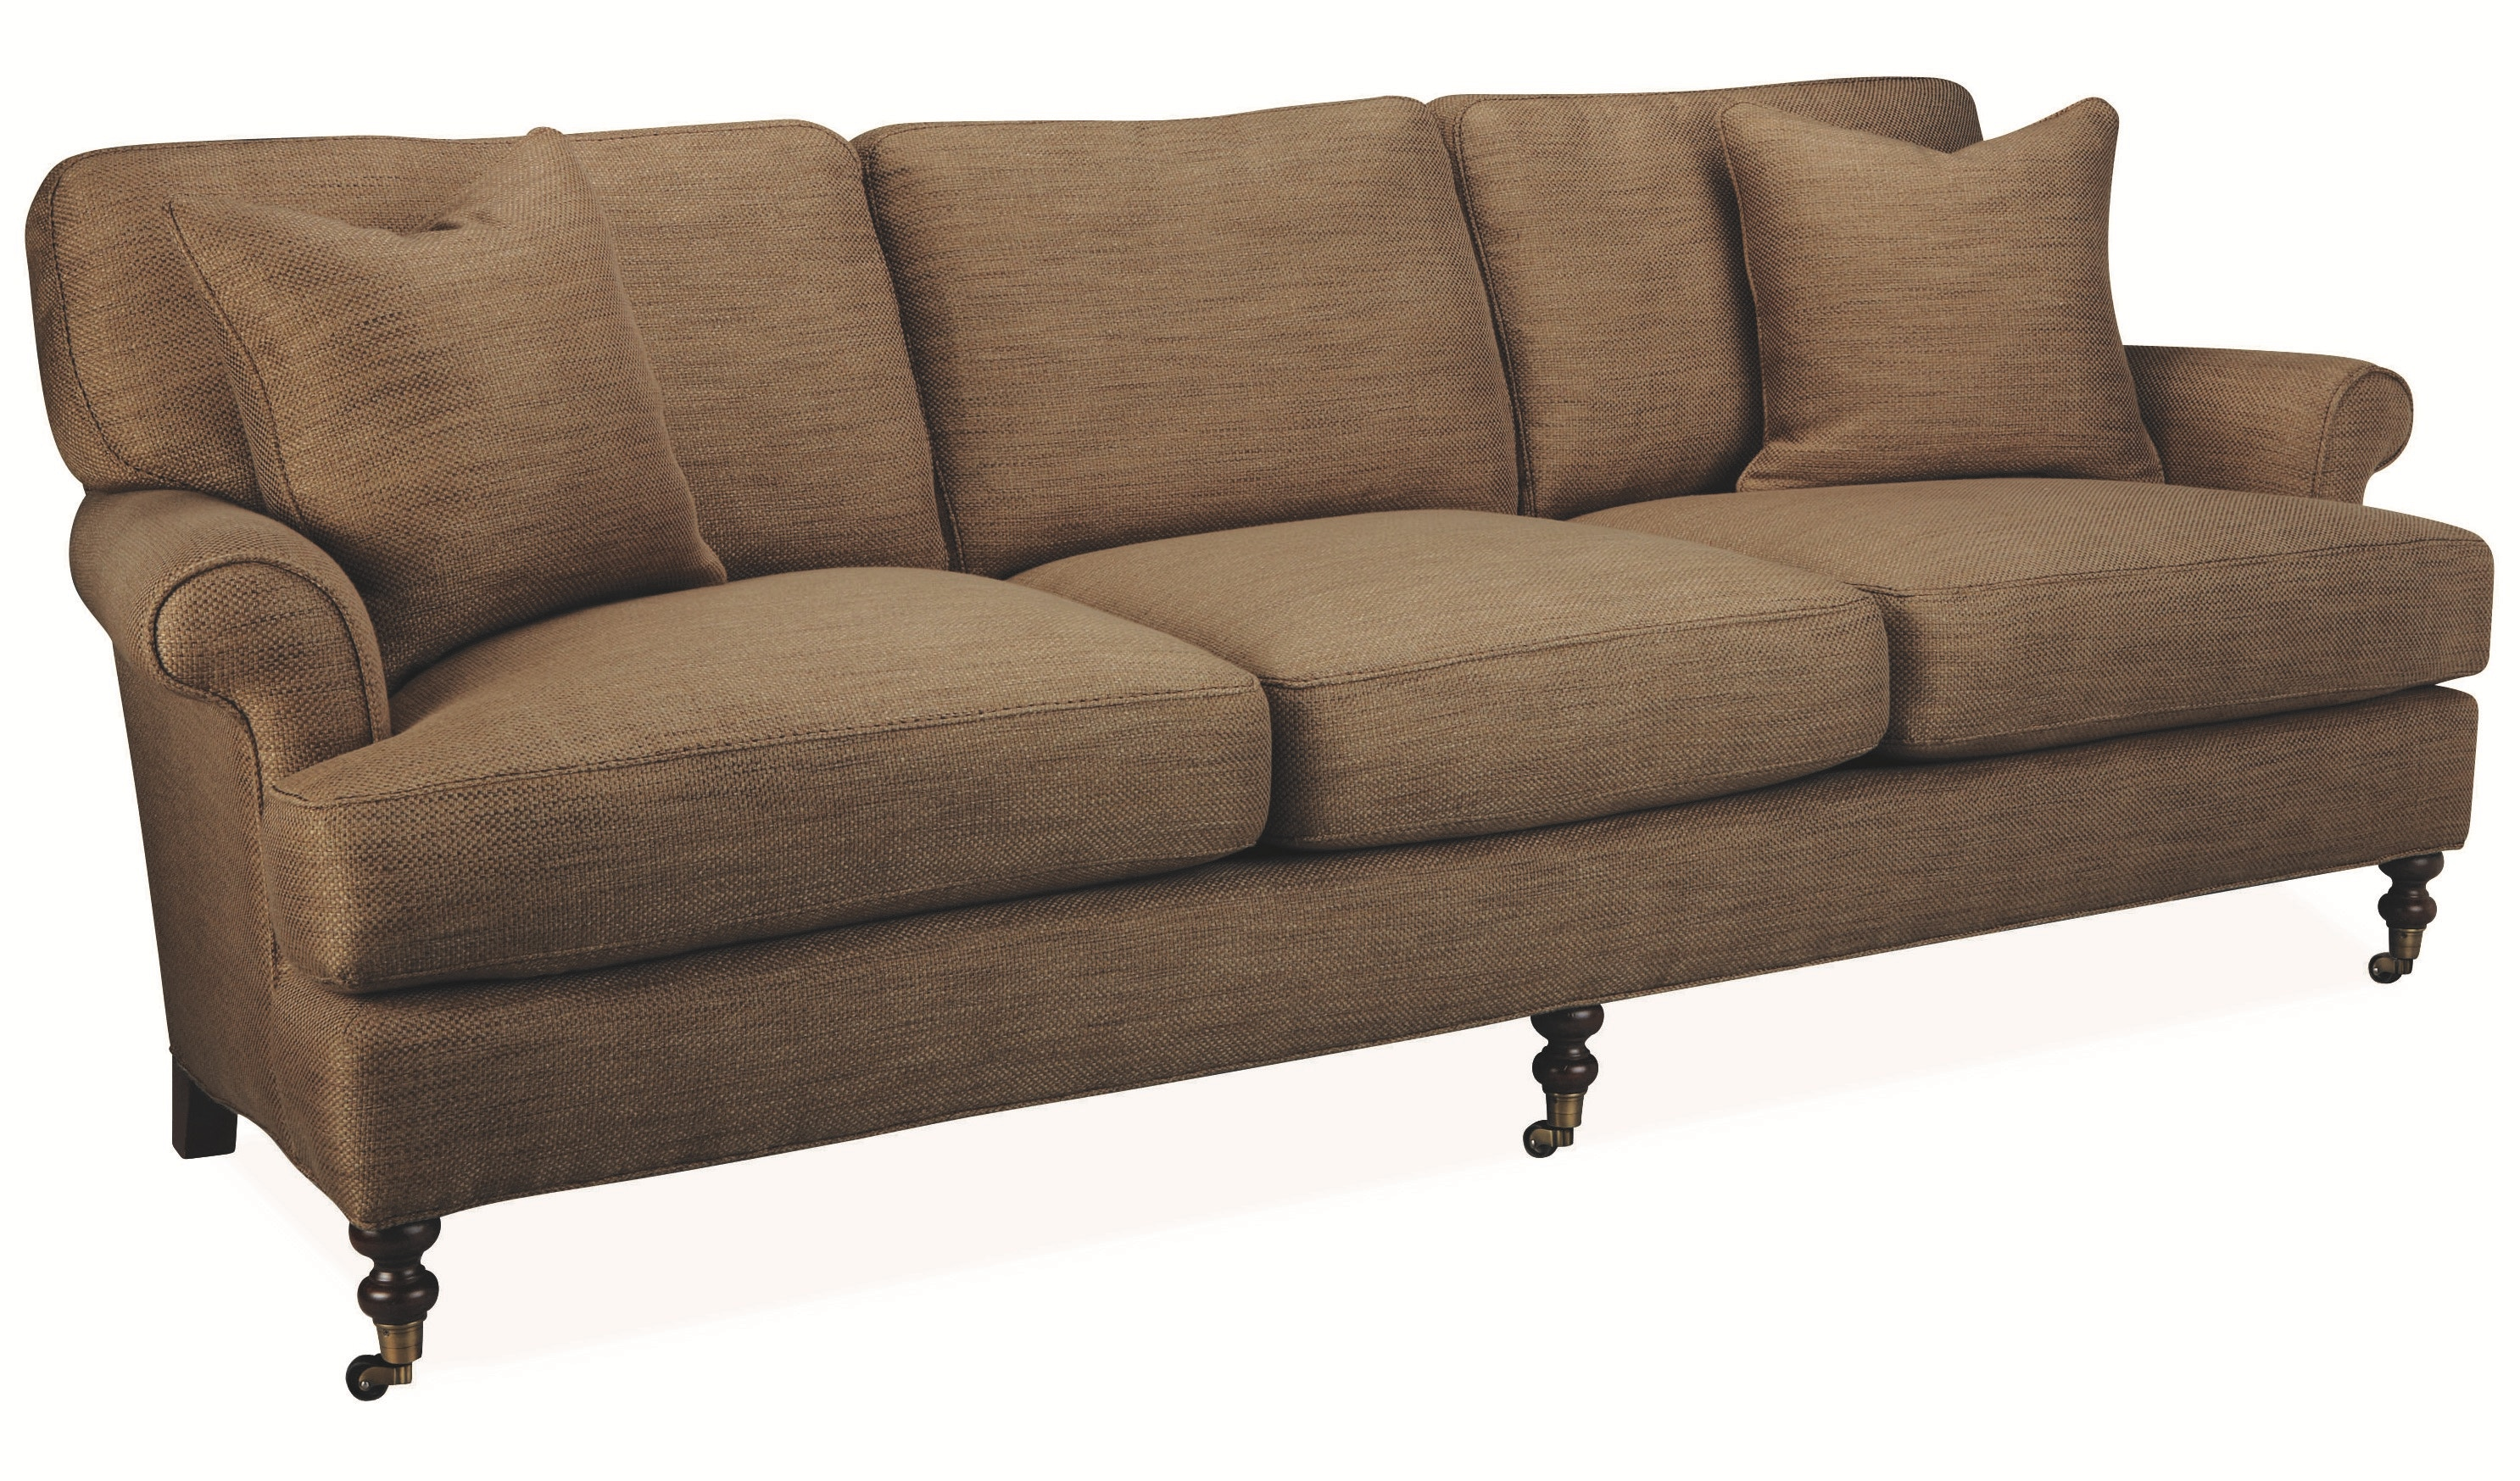 sofa virginia beach leather reclining lee industries living room 3895 03 exotic home